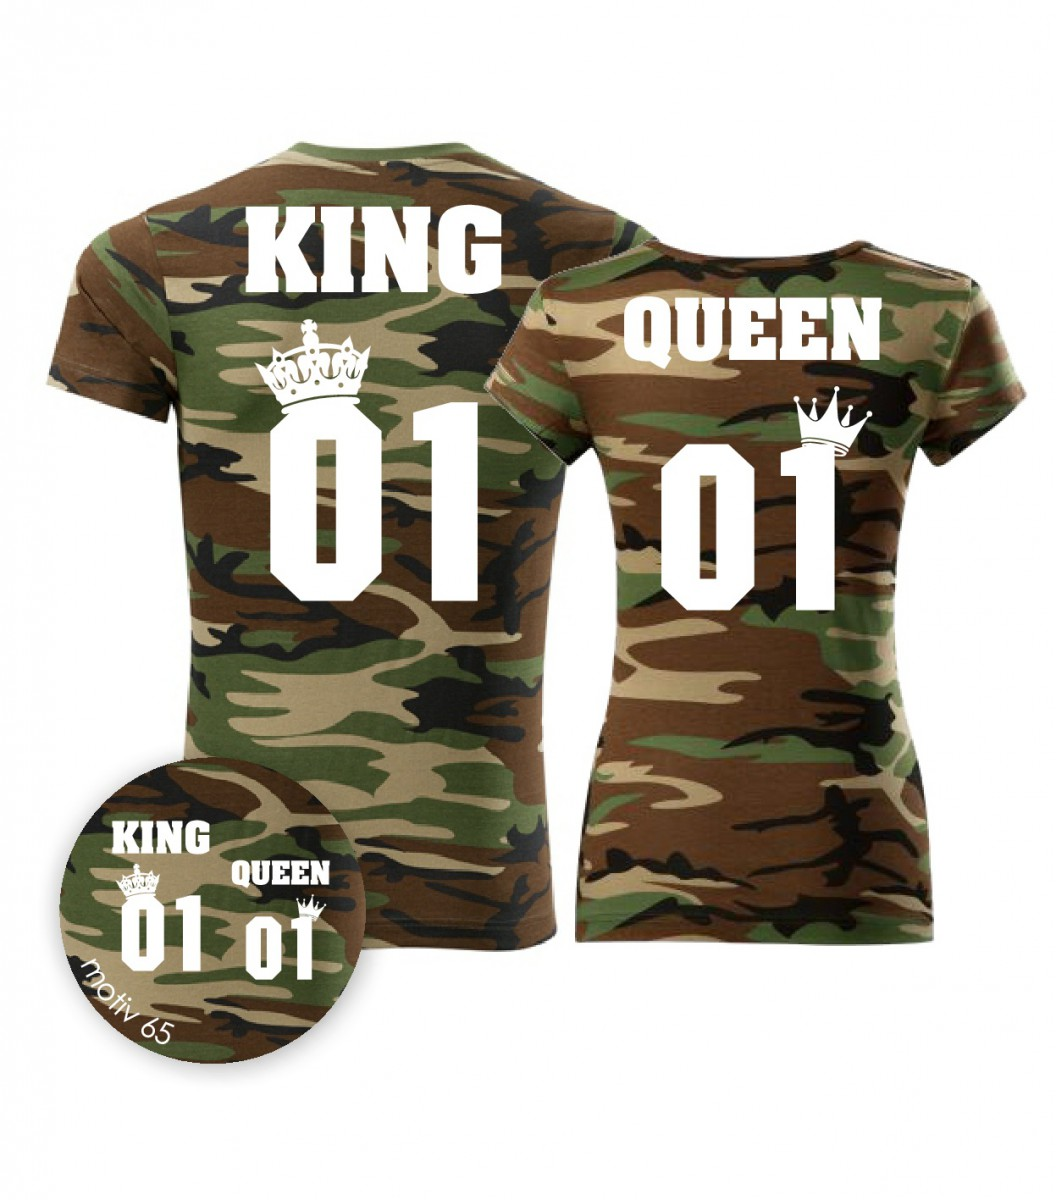 Trička pro páry King and Queen 065 Camouflage Brown  4eb69c1b45